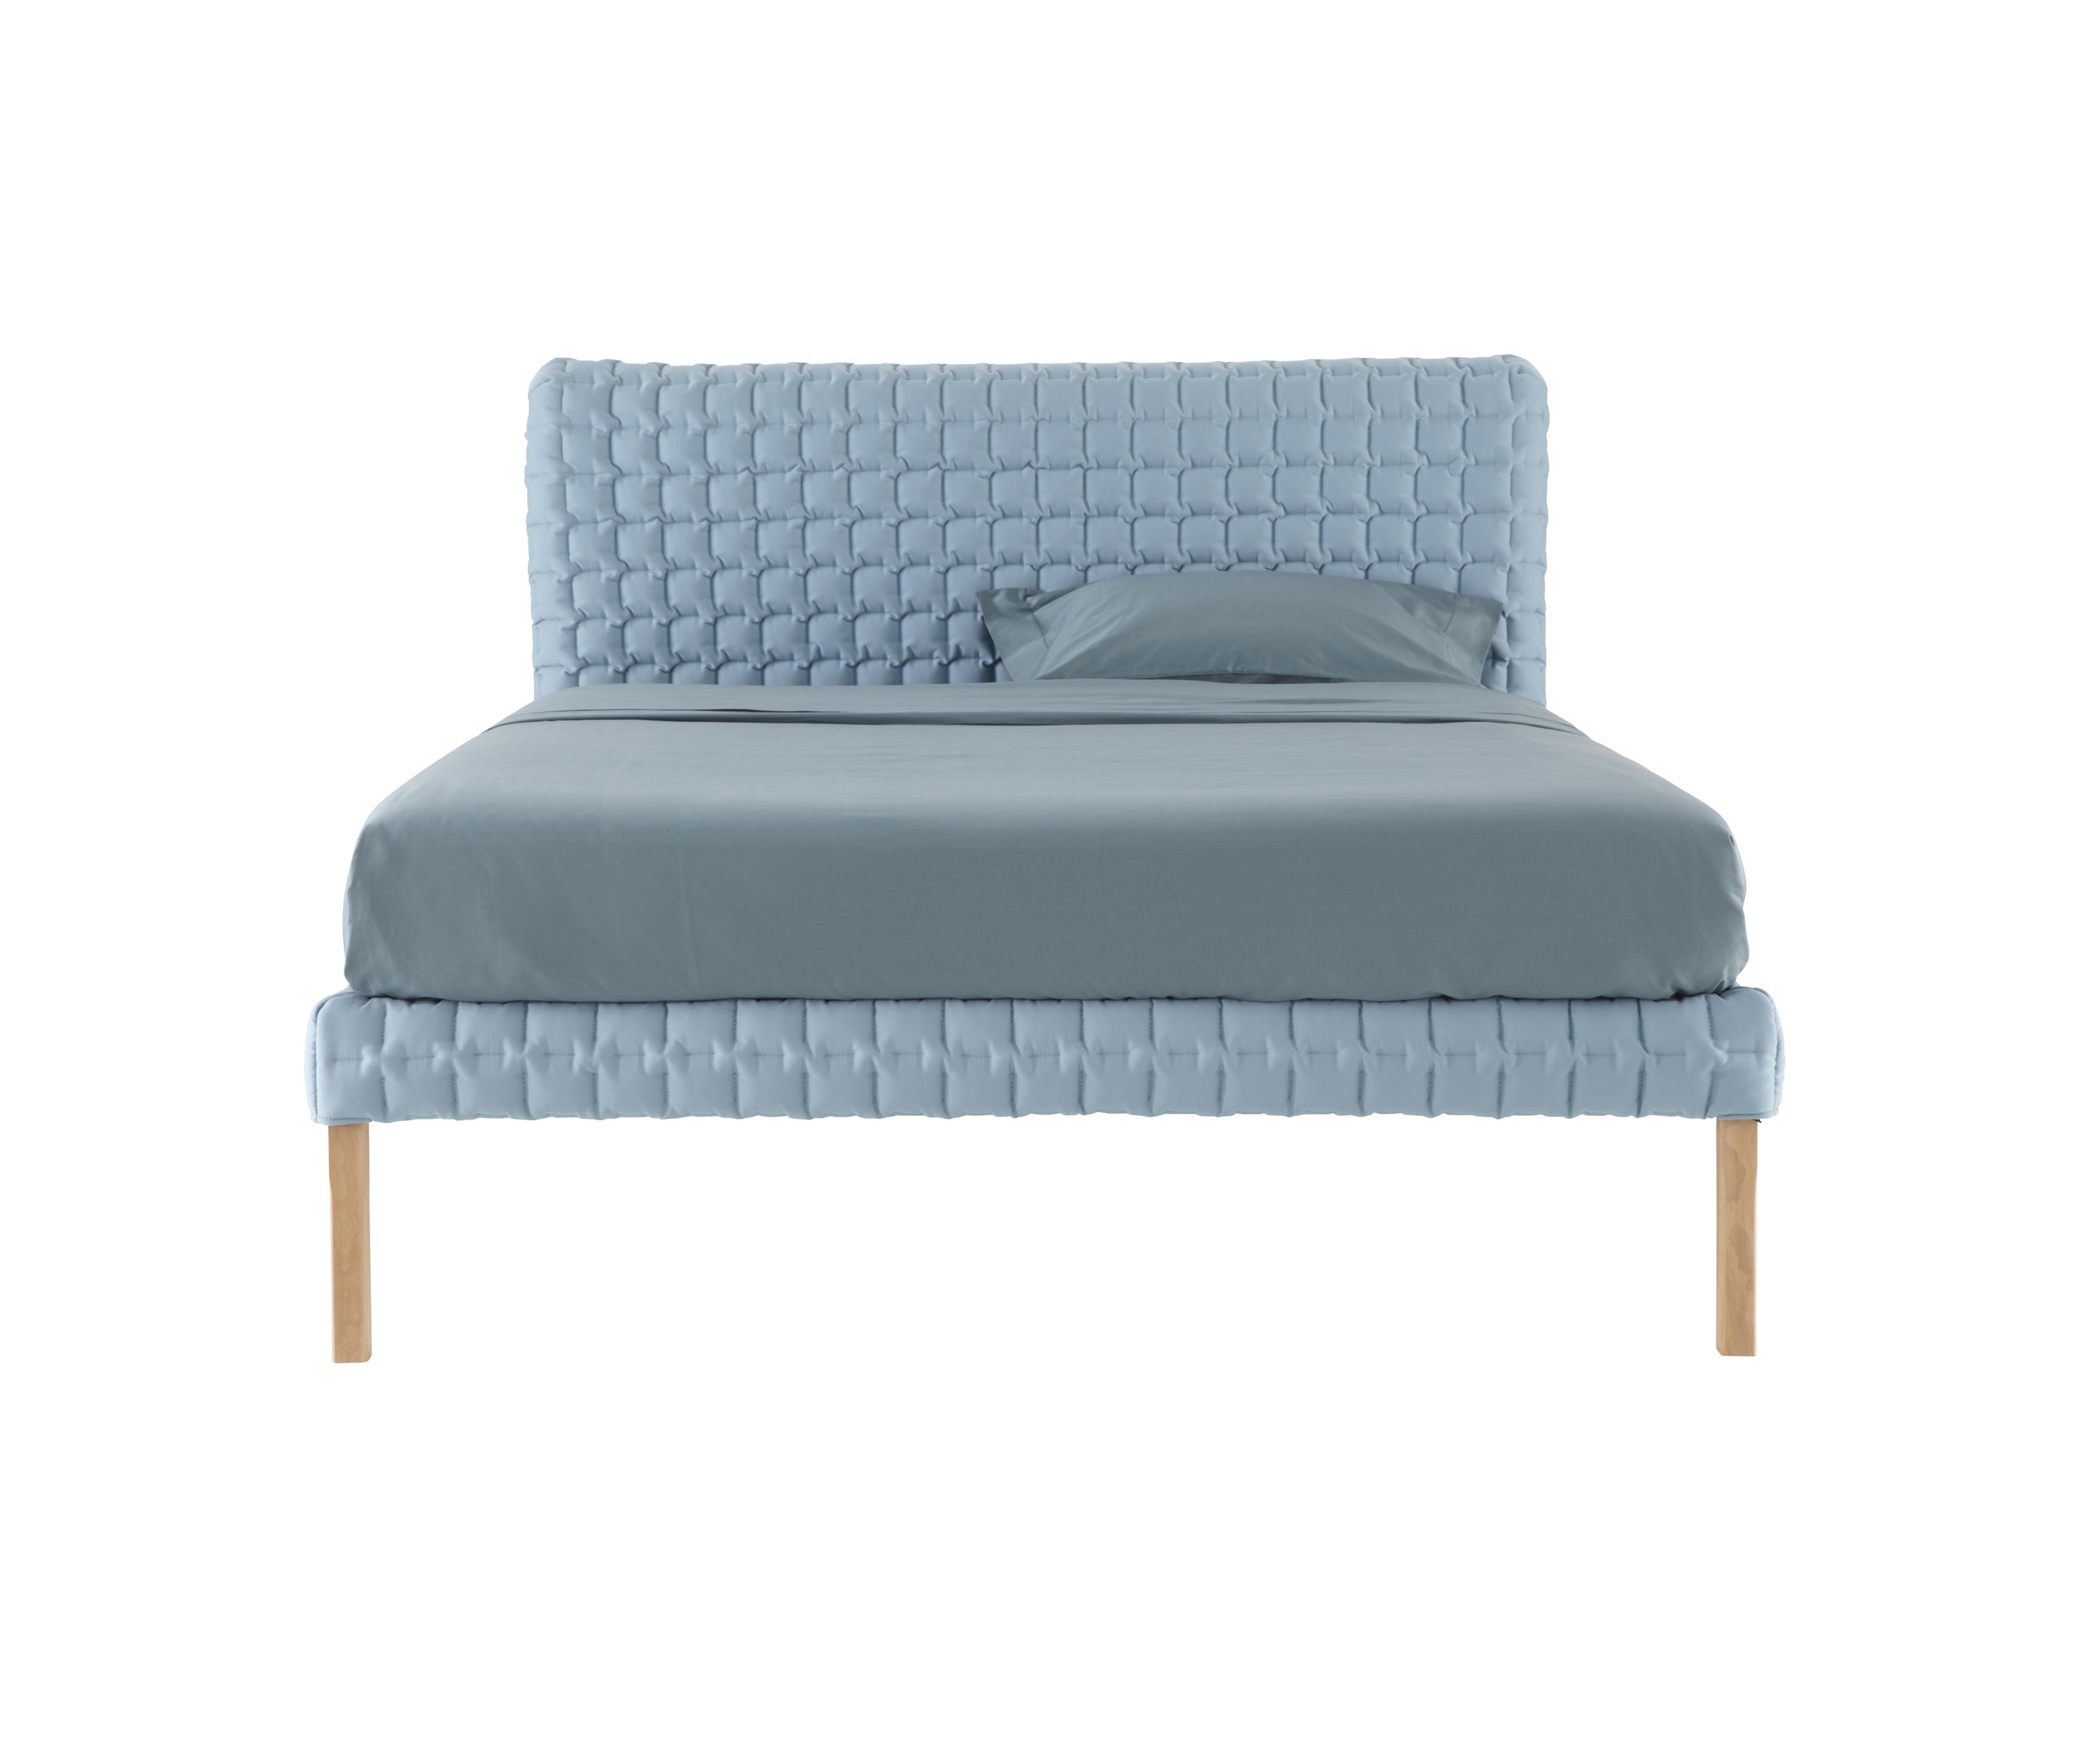 Ruch Bed Double Beds From Ligne Roset Architonic